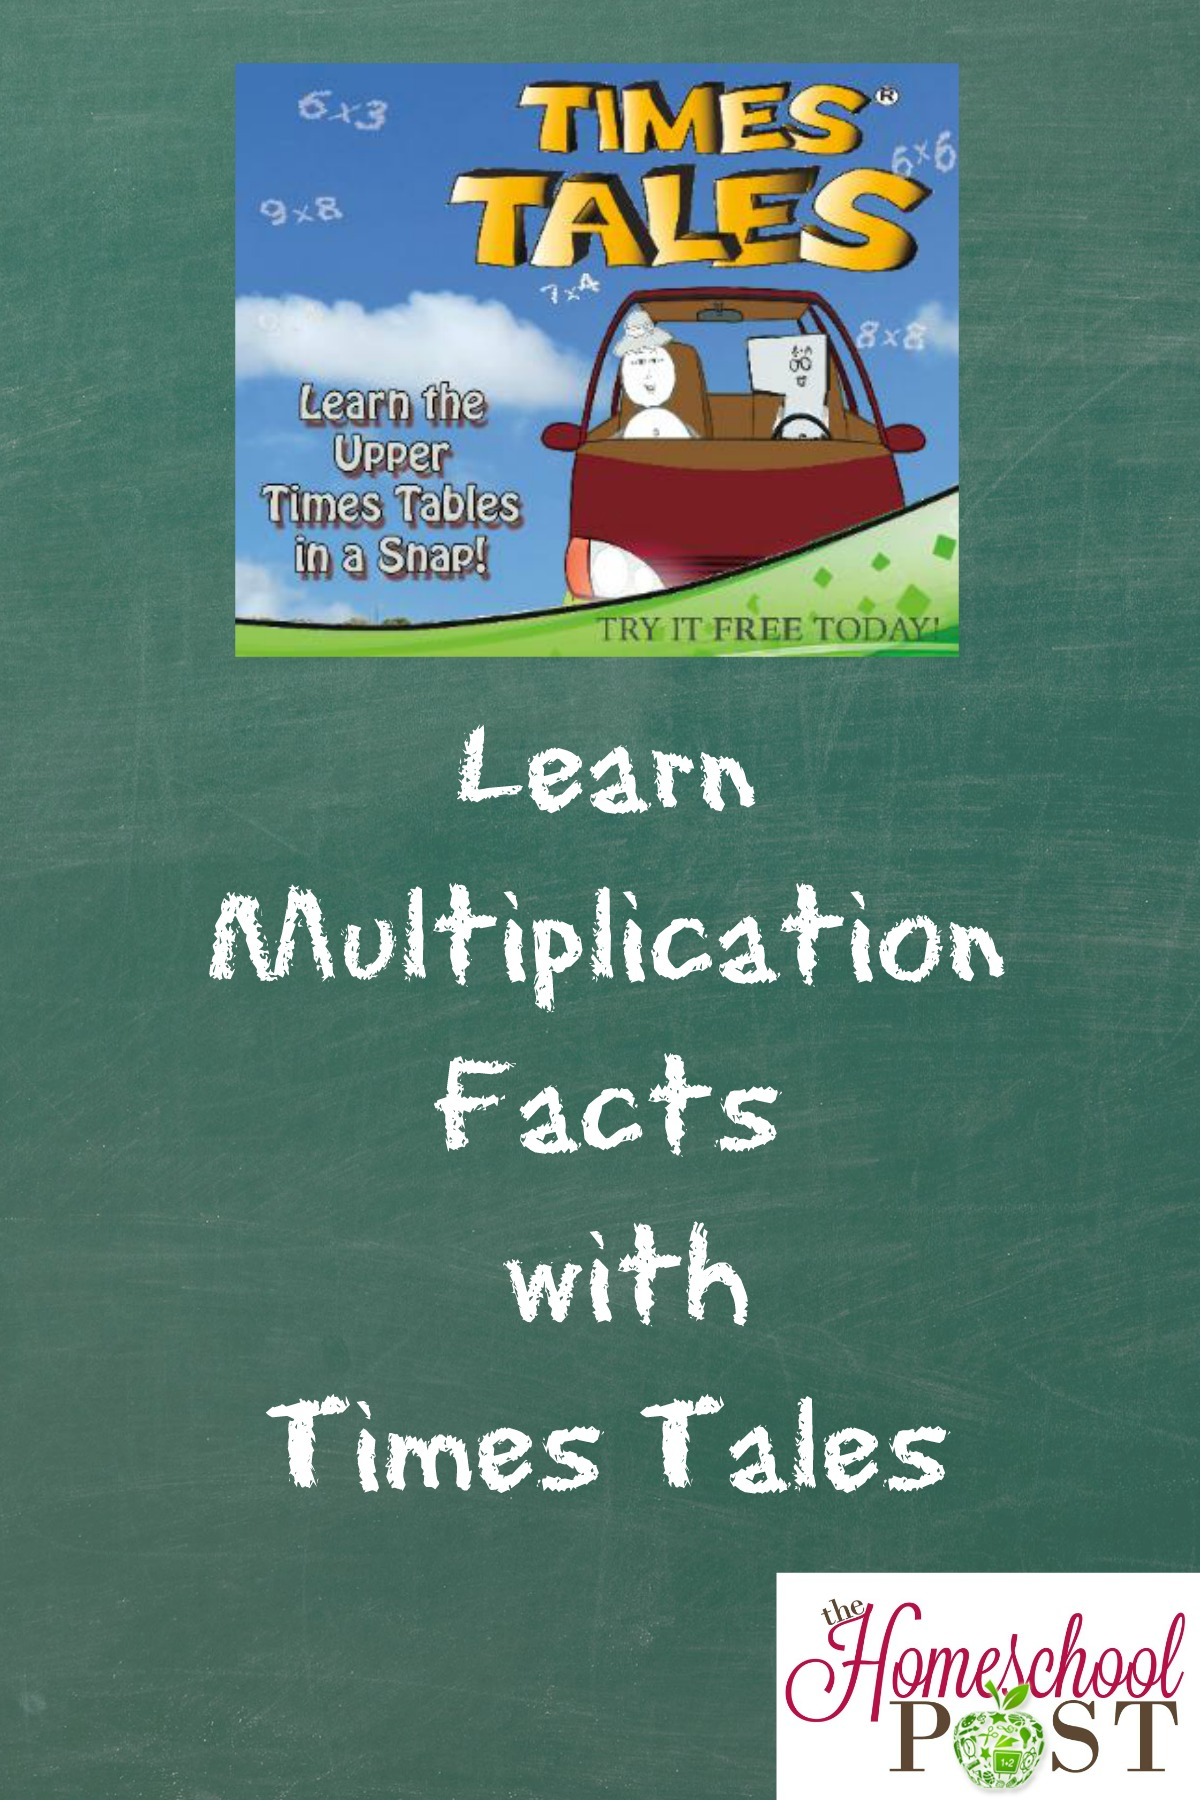 Memorize multiplication facts with Times Tales DVD and printables. hsbapost.com